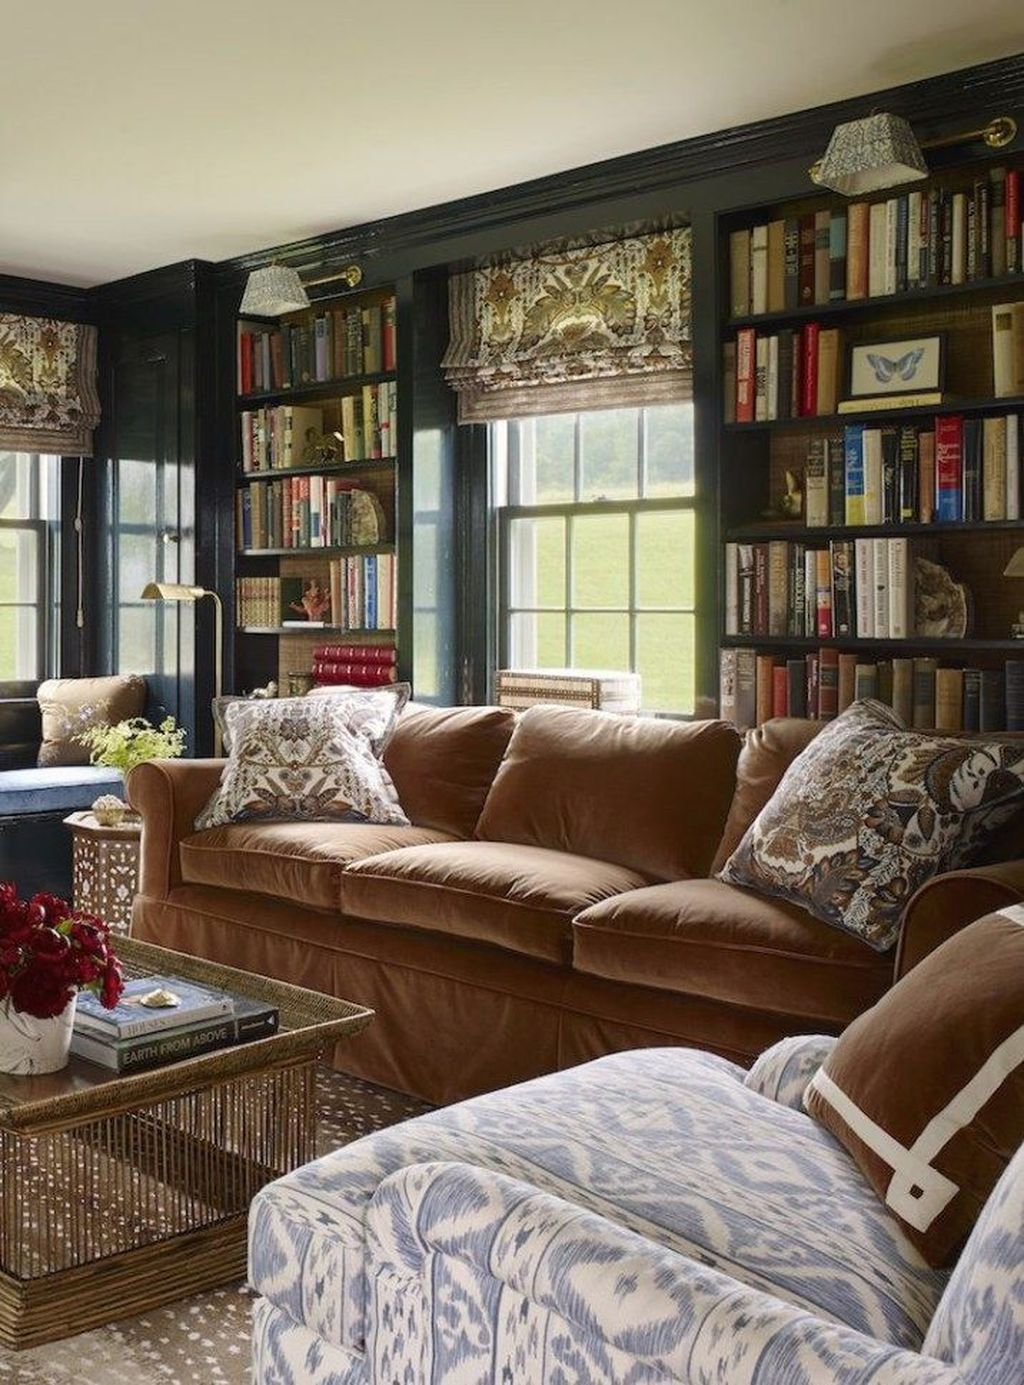 41 Reading Room Decor Inspiration To Make You Cozy (With ...